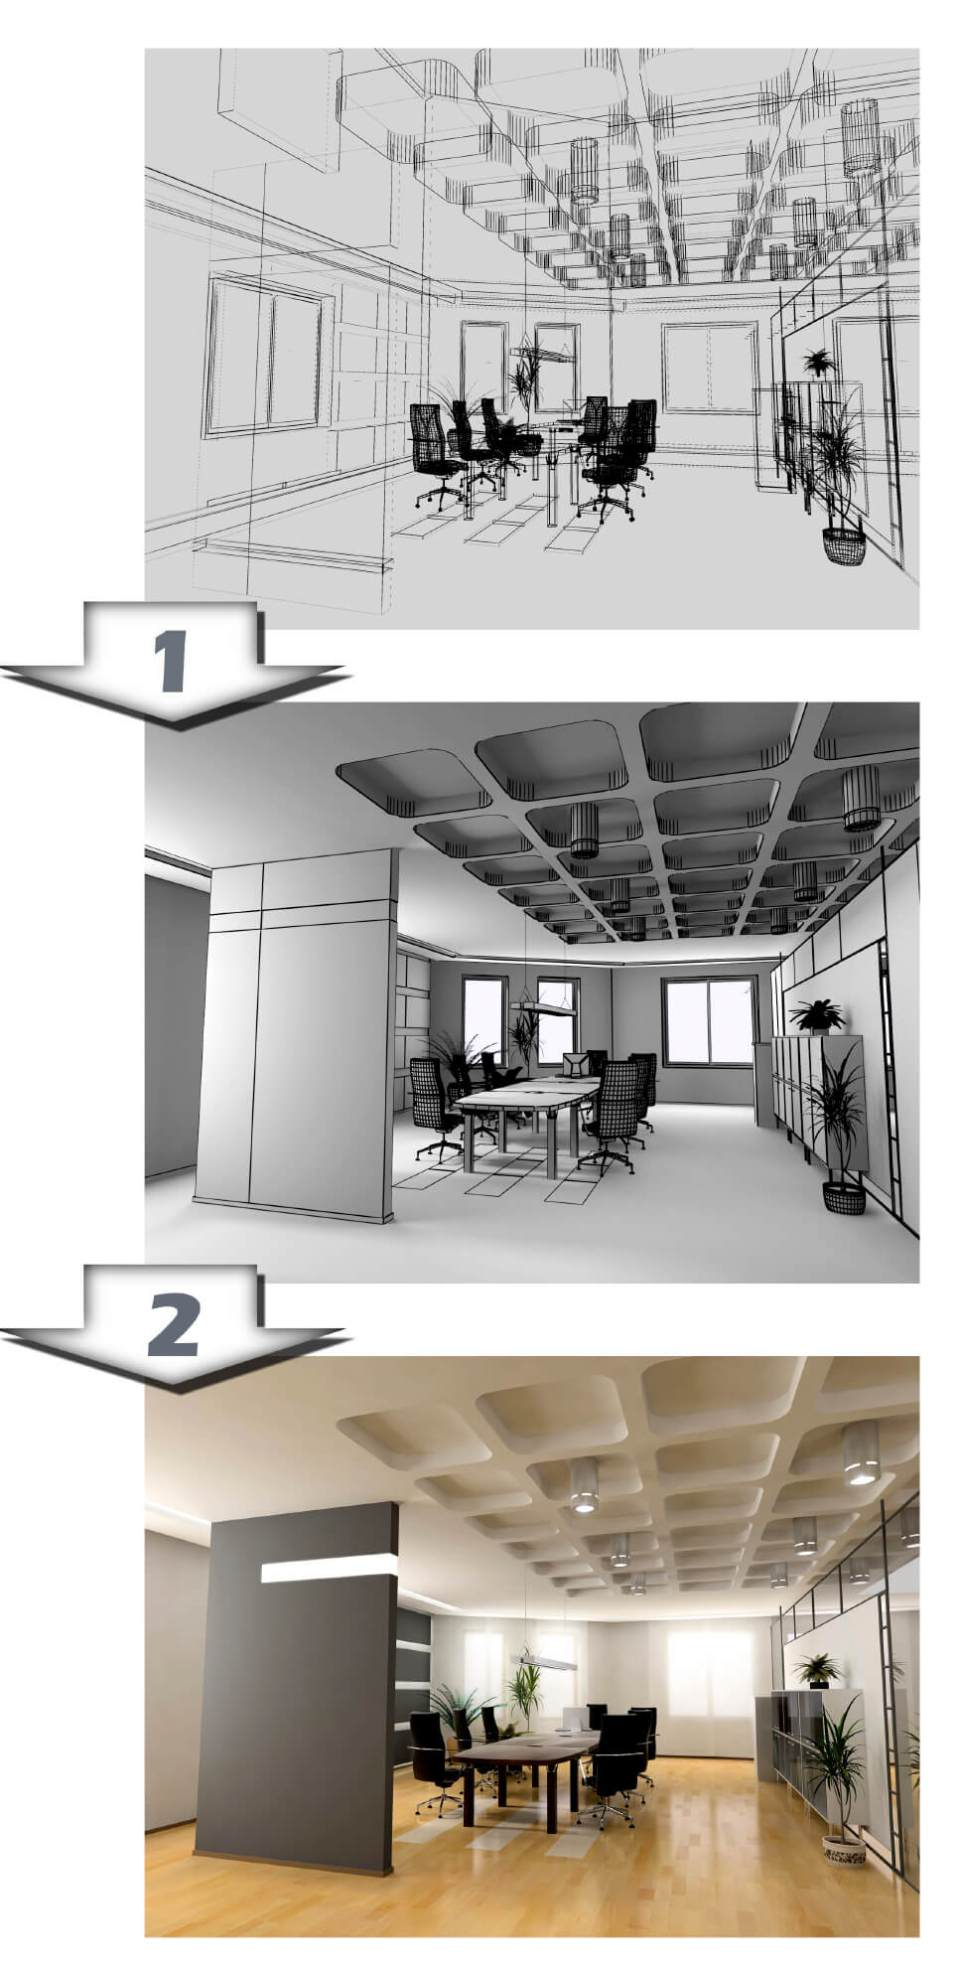 Picture of refurbishment of occupied office space (out-of-hours churn)